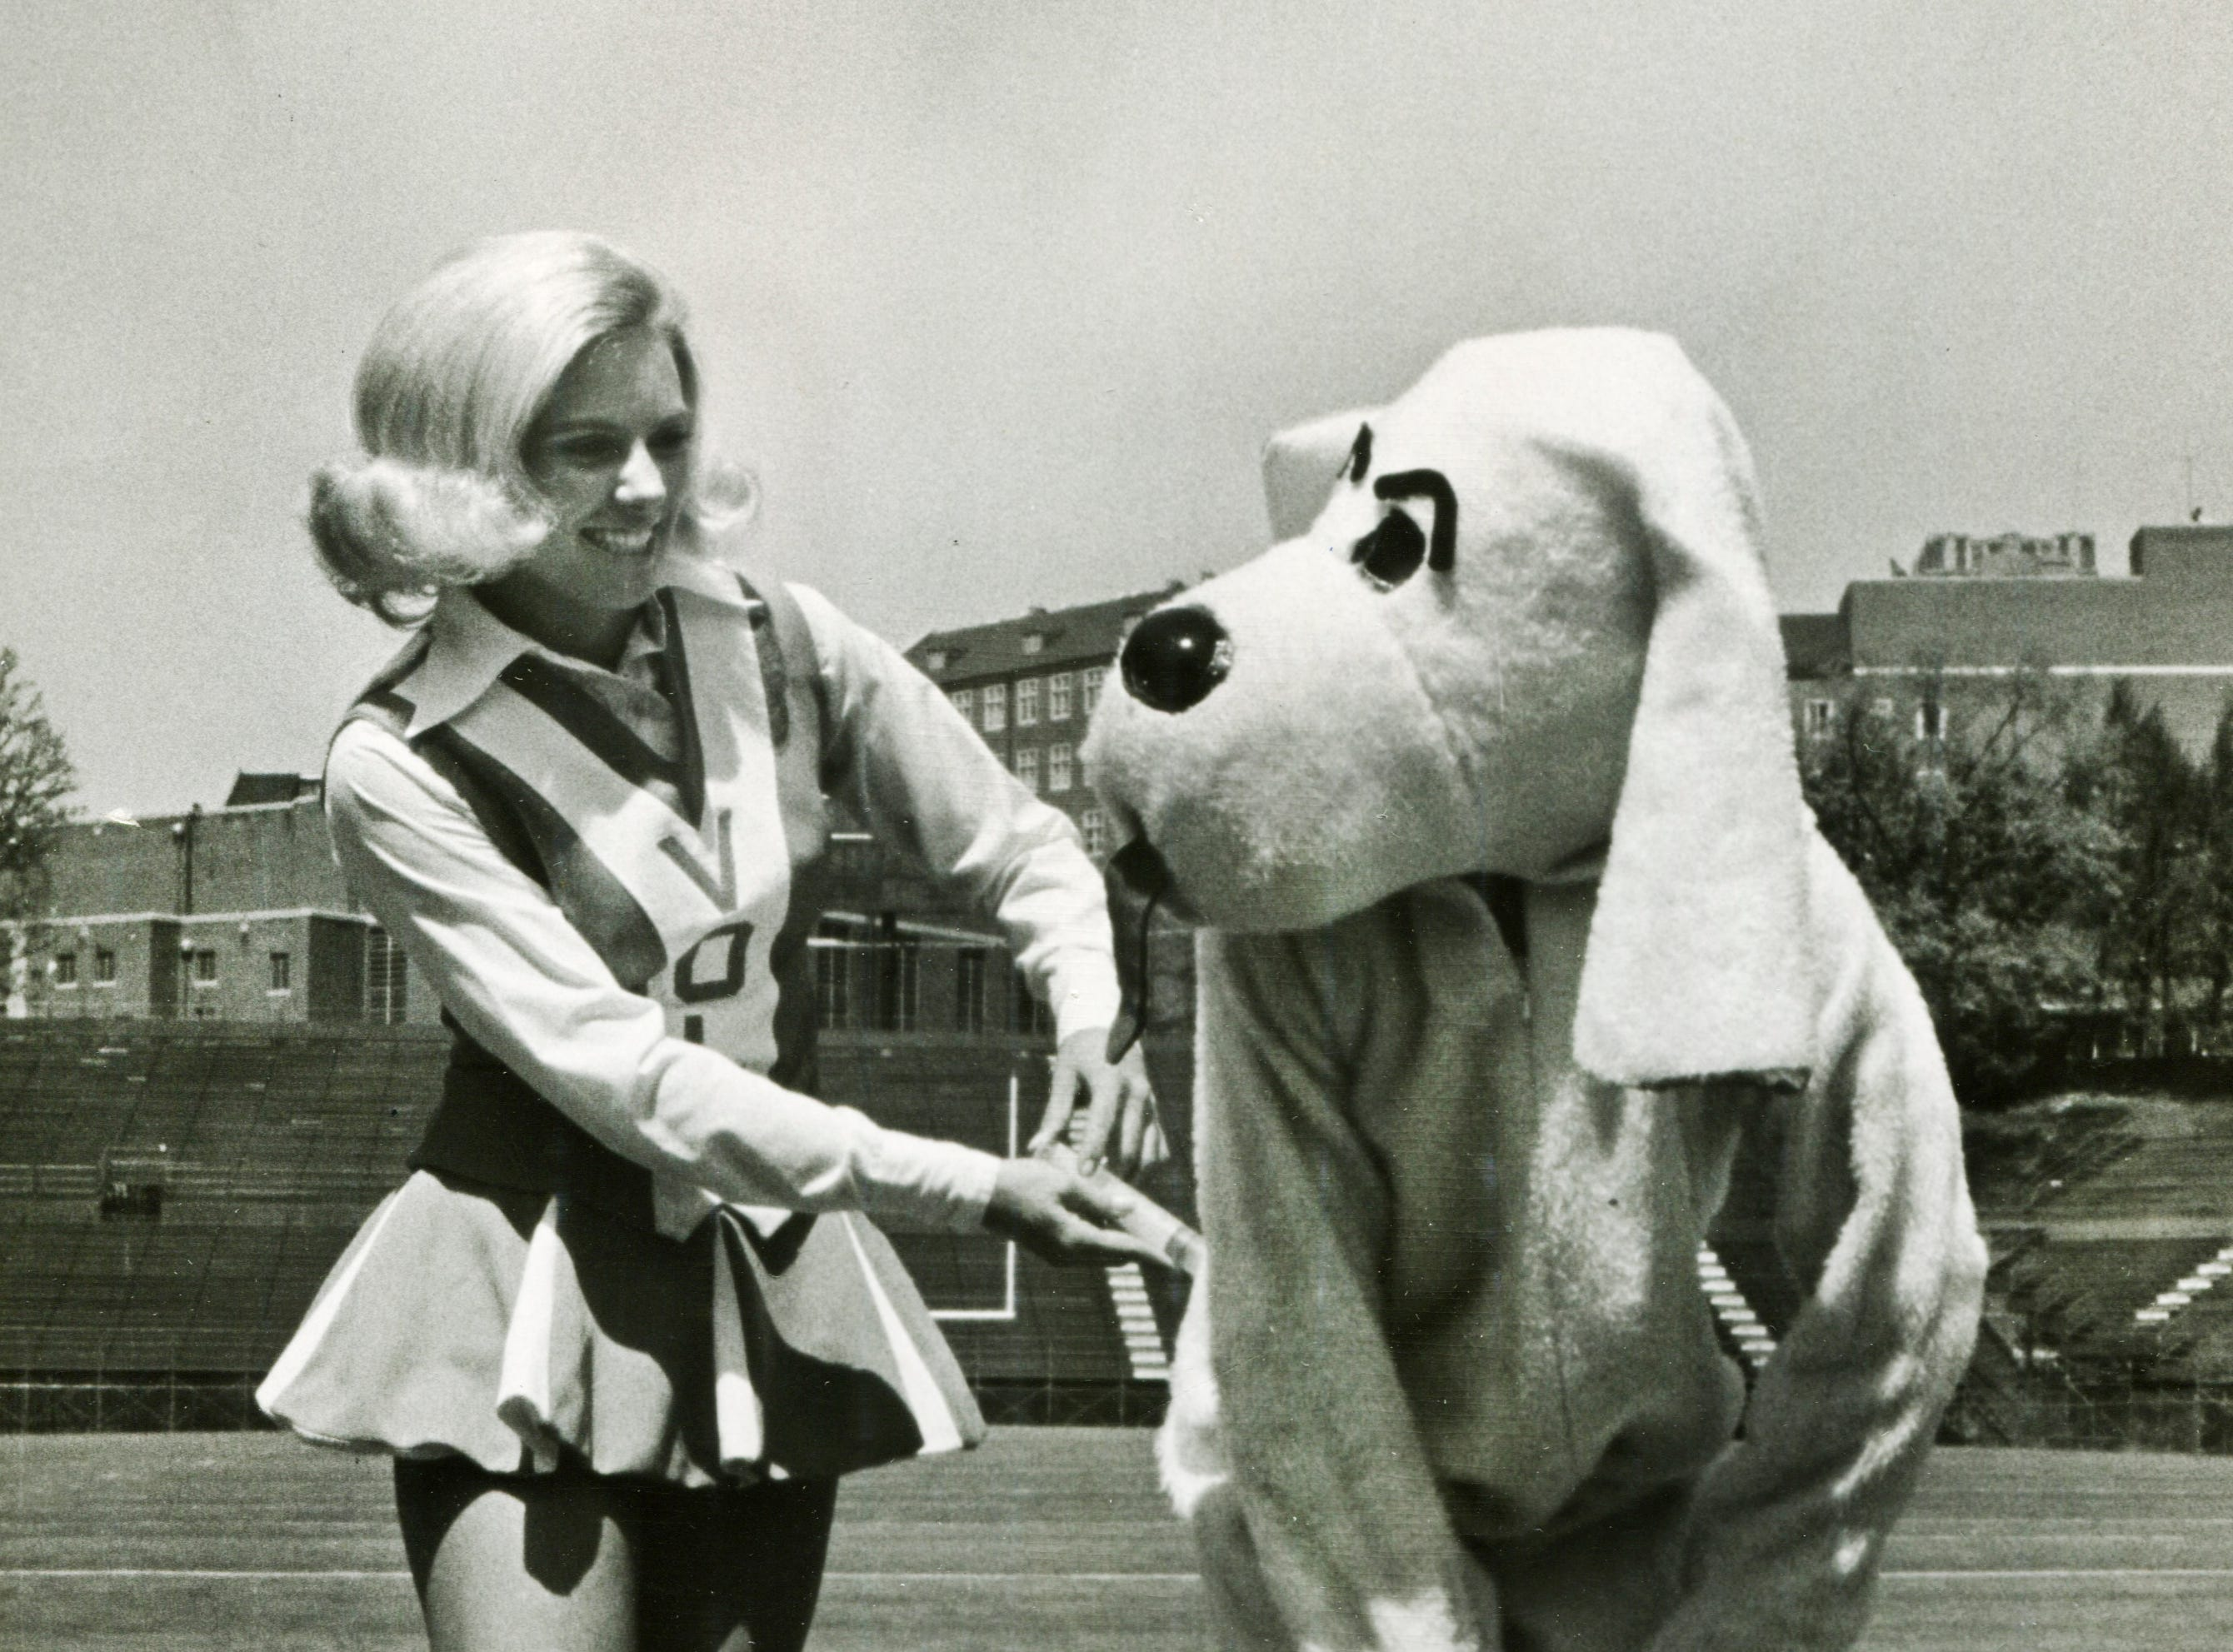 In a photo published April 25, 1971, Tennessee  cheerleader Pat Green pretends to give a rabies shot to Smokey to publicize a County Health Department inoculation clinic for dogs and cats. The good sport wearing the Smokey suit is 12-year-old Chip Brake, son of UT photographer Al Brake.